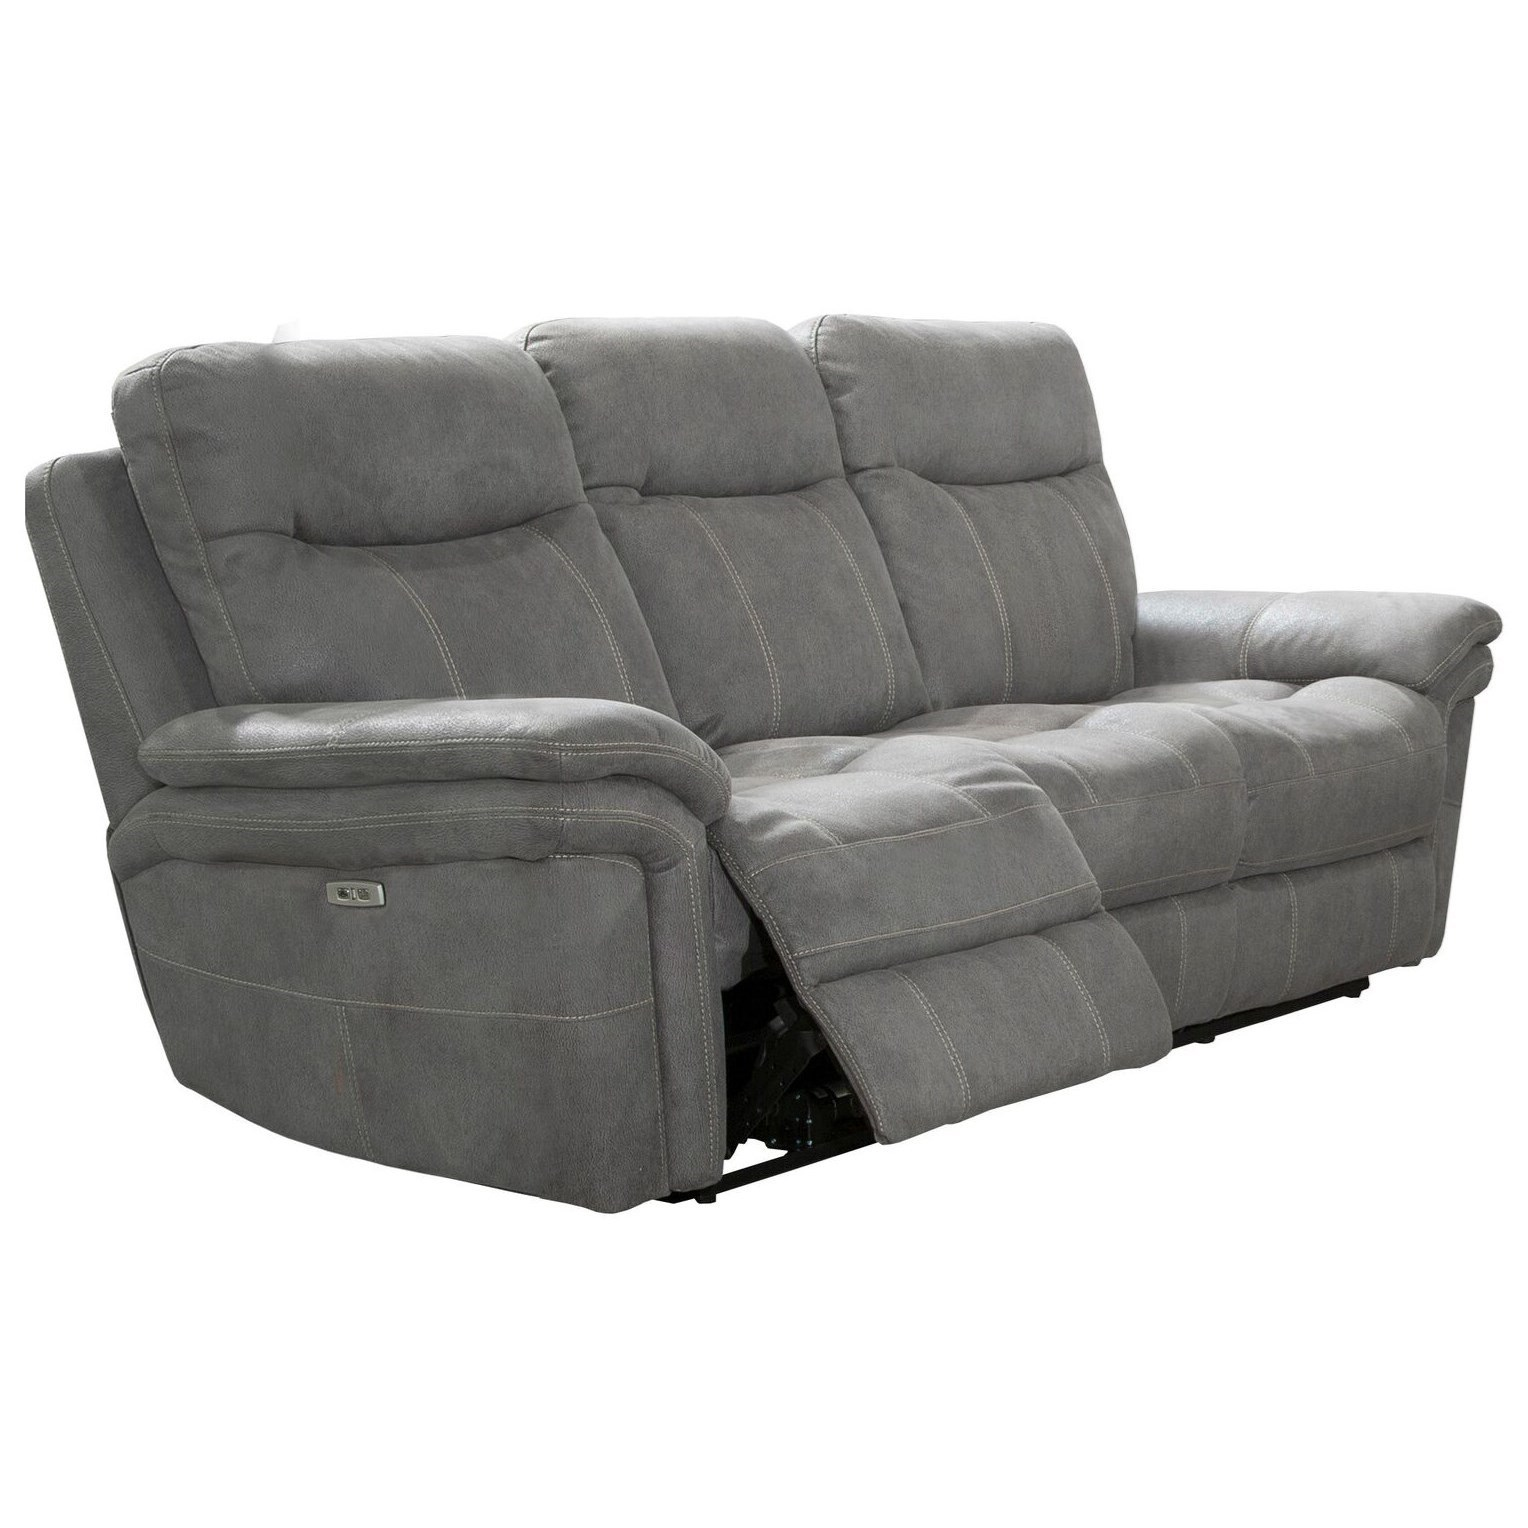 Parker Living Mason Casual Dual Recliner Power Sofa with USB Ports